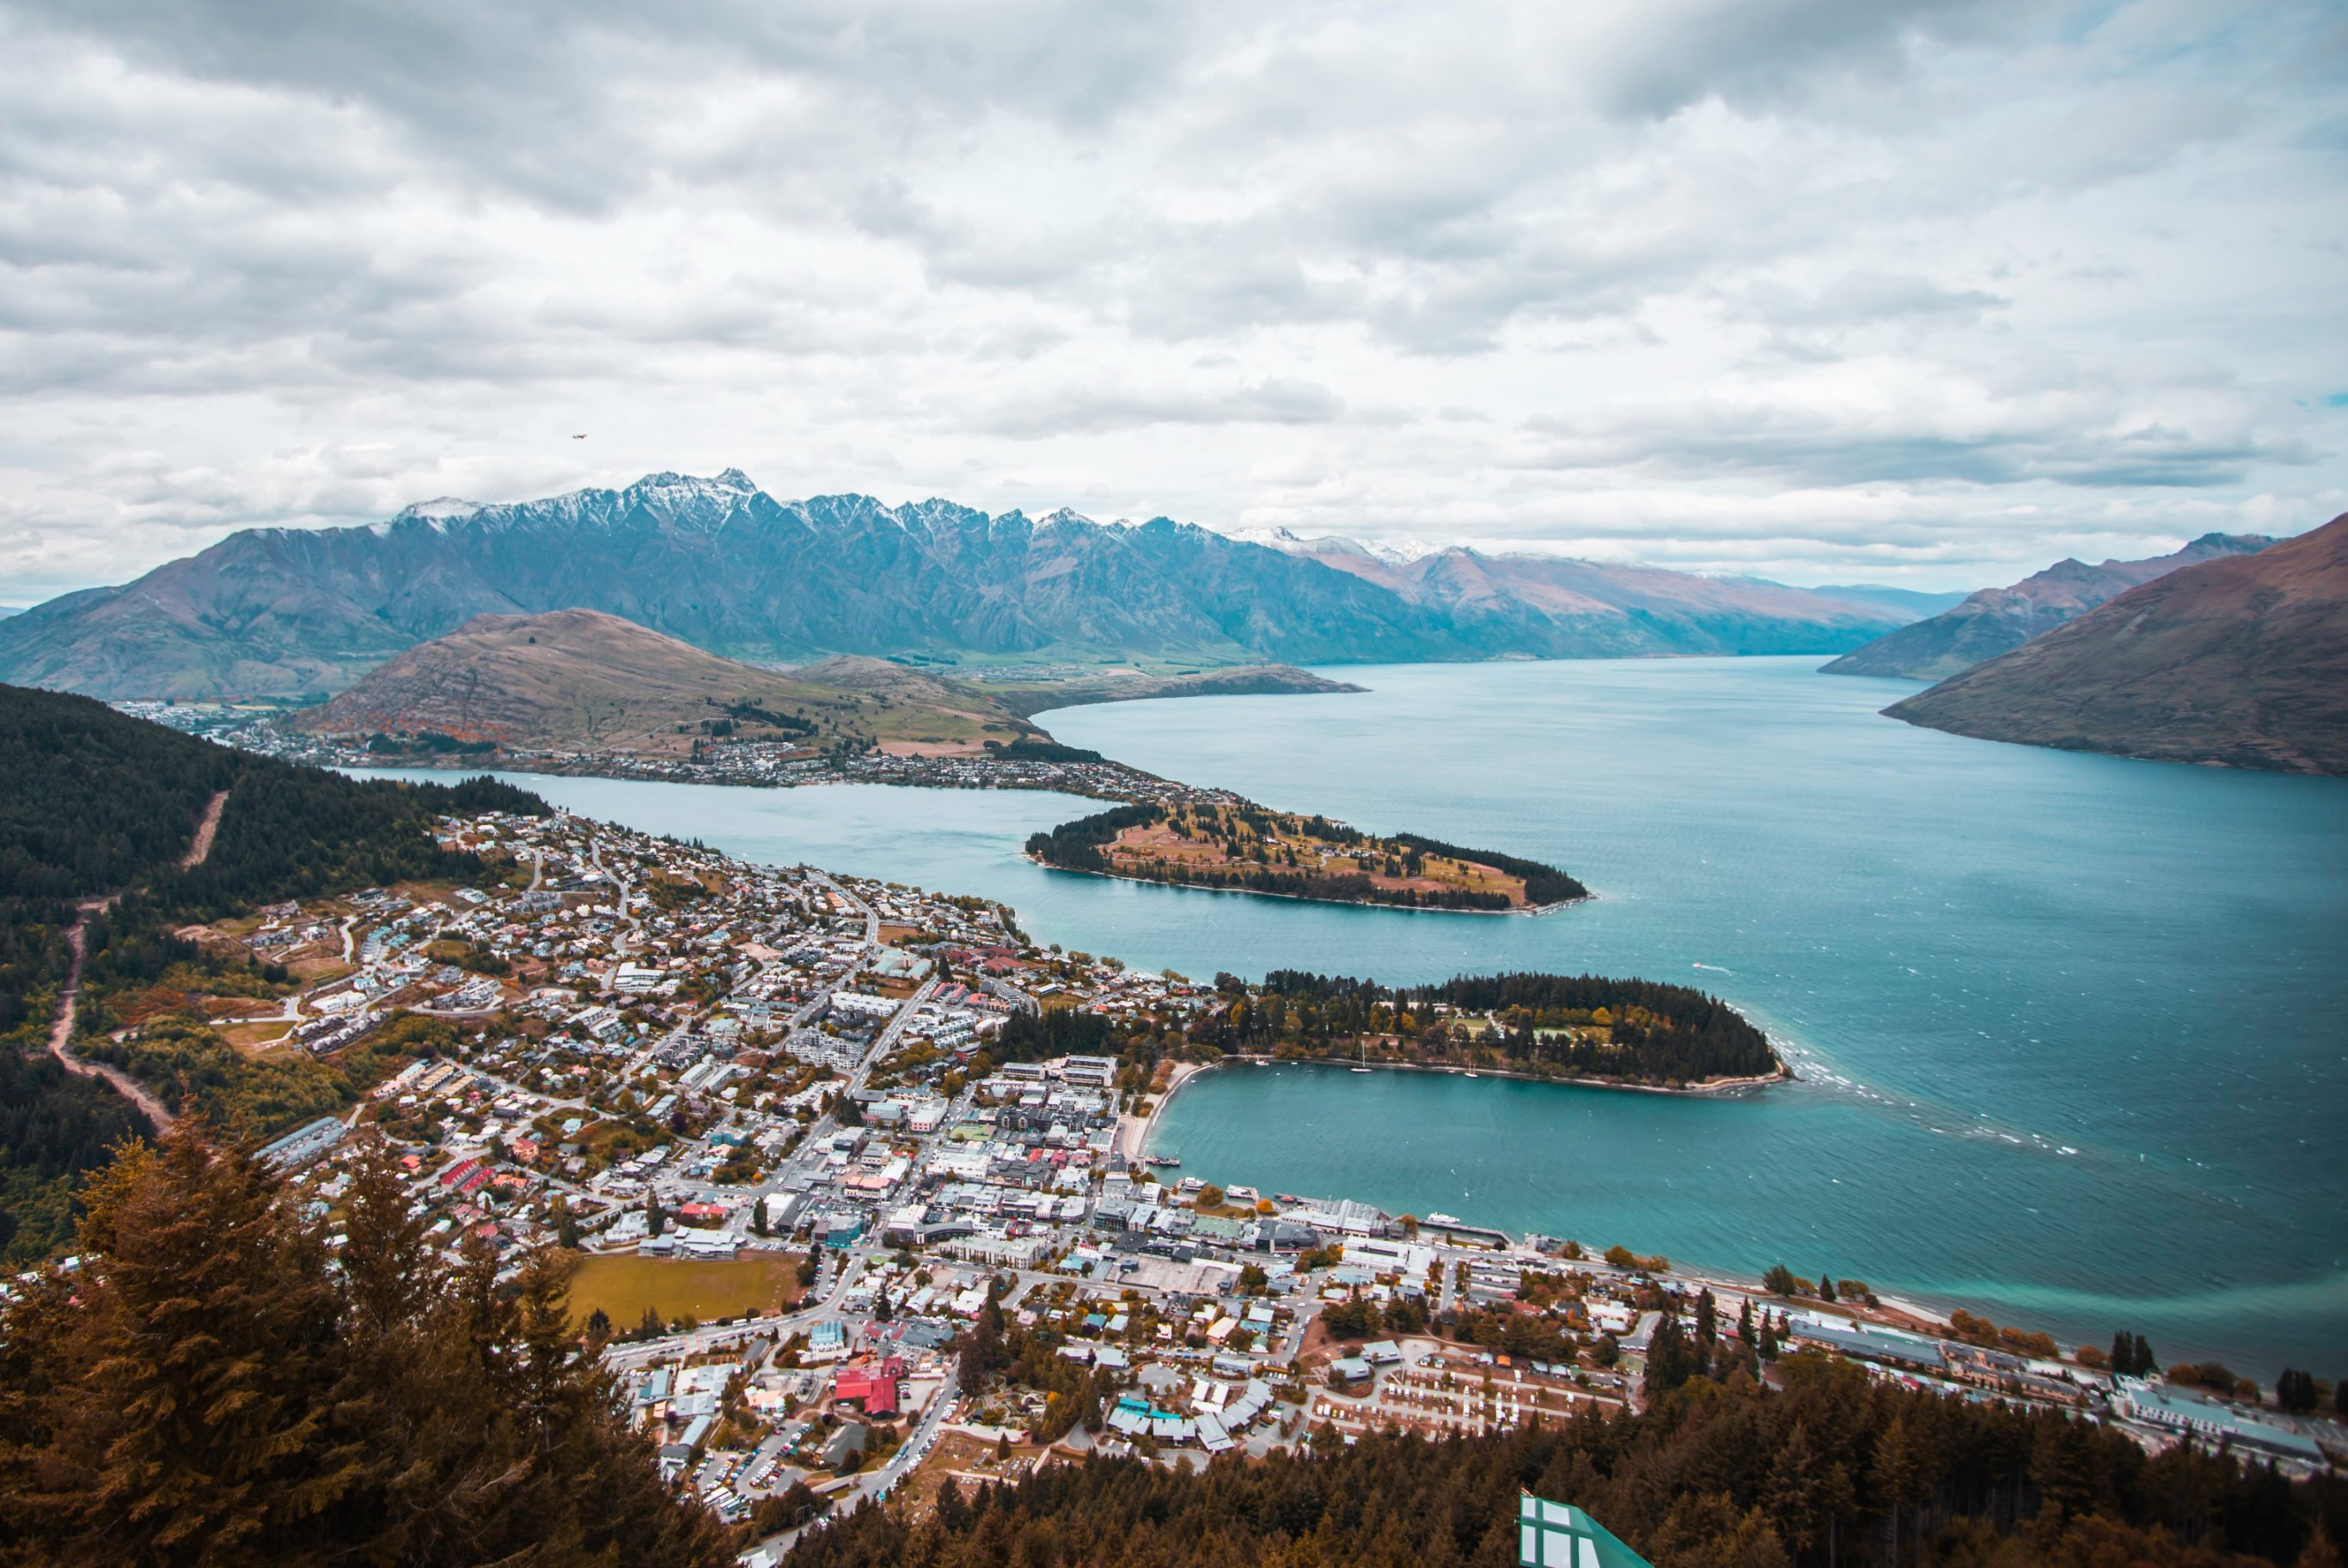 3-Day Exclusive Luxury Golf Escape to Queenstown - New Zealand Itinerary